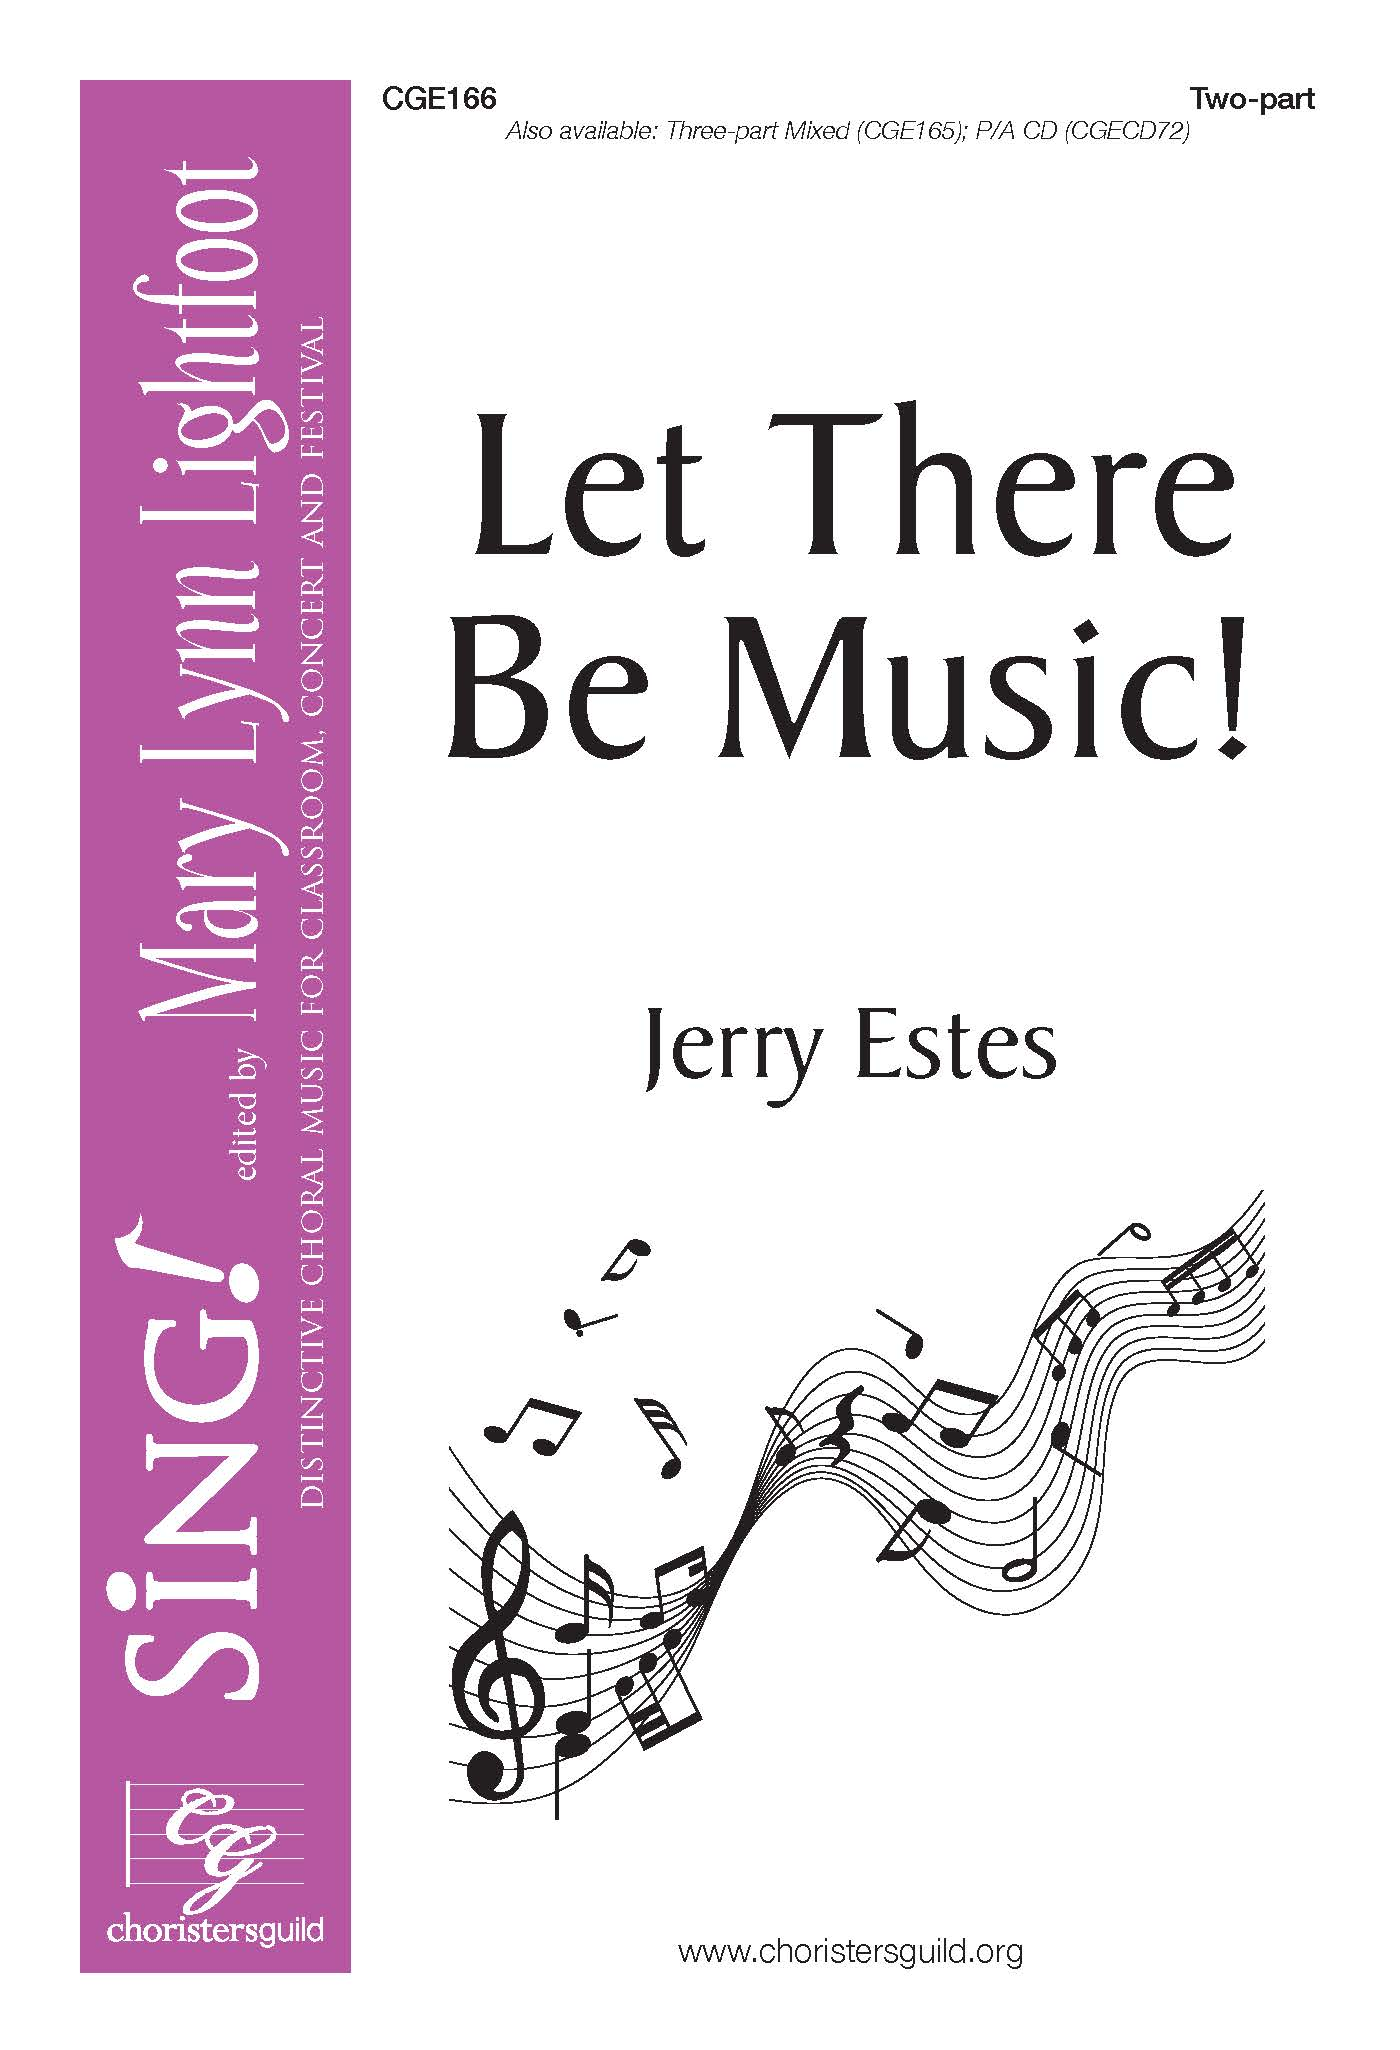 Let There Be Music! Two-part